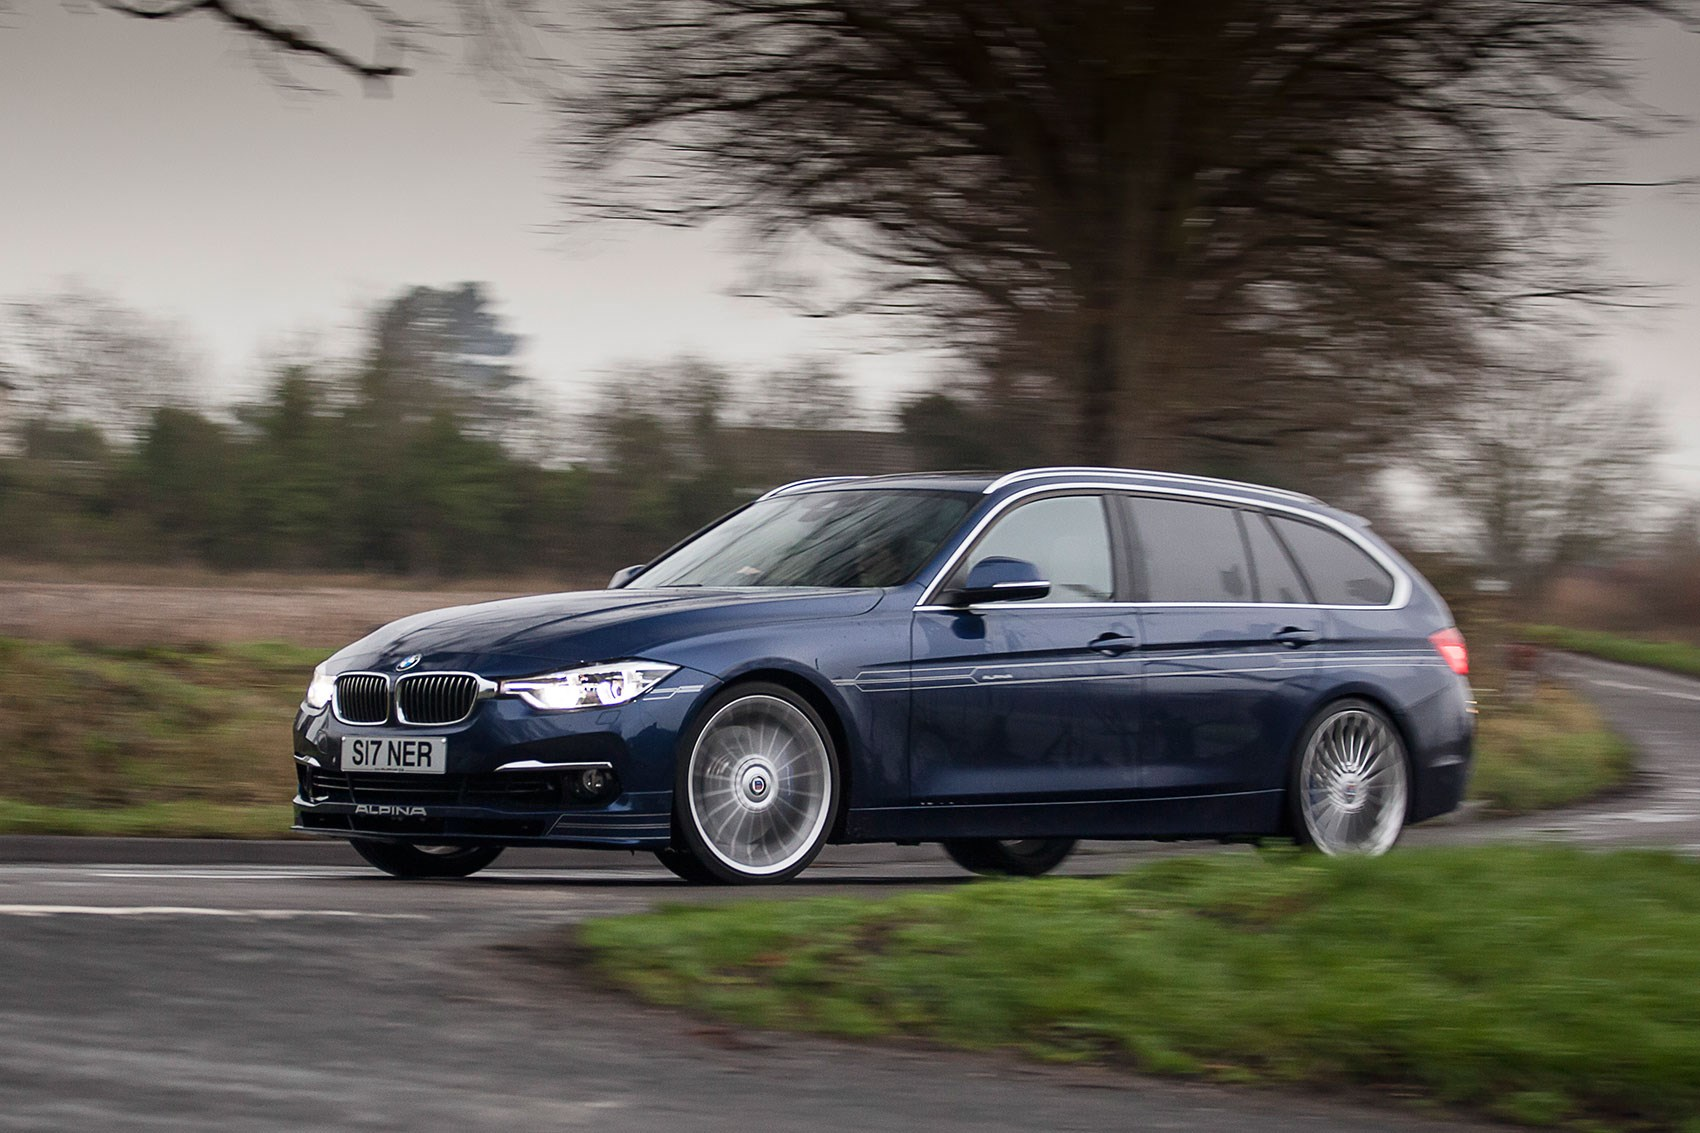 Bmw Of Murray >> BMW Alpina D3 Bi-Turbo Touring (2016) review | CAR Magazine